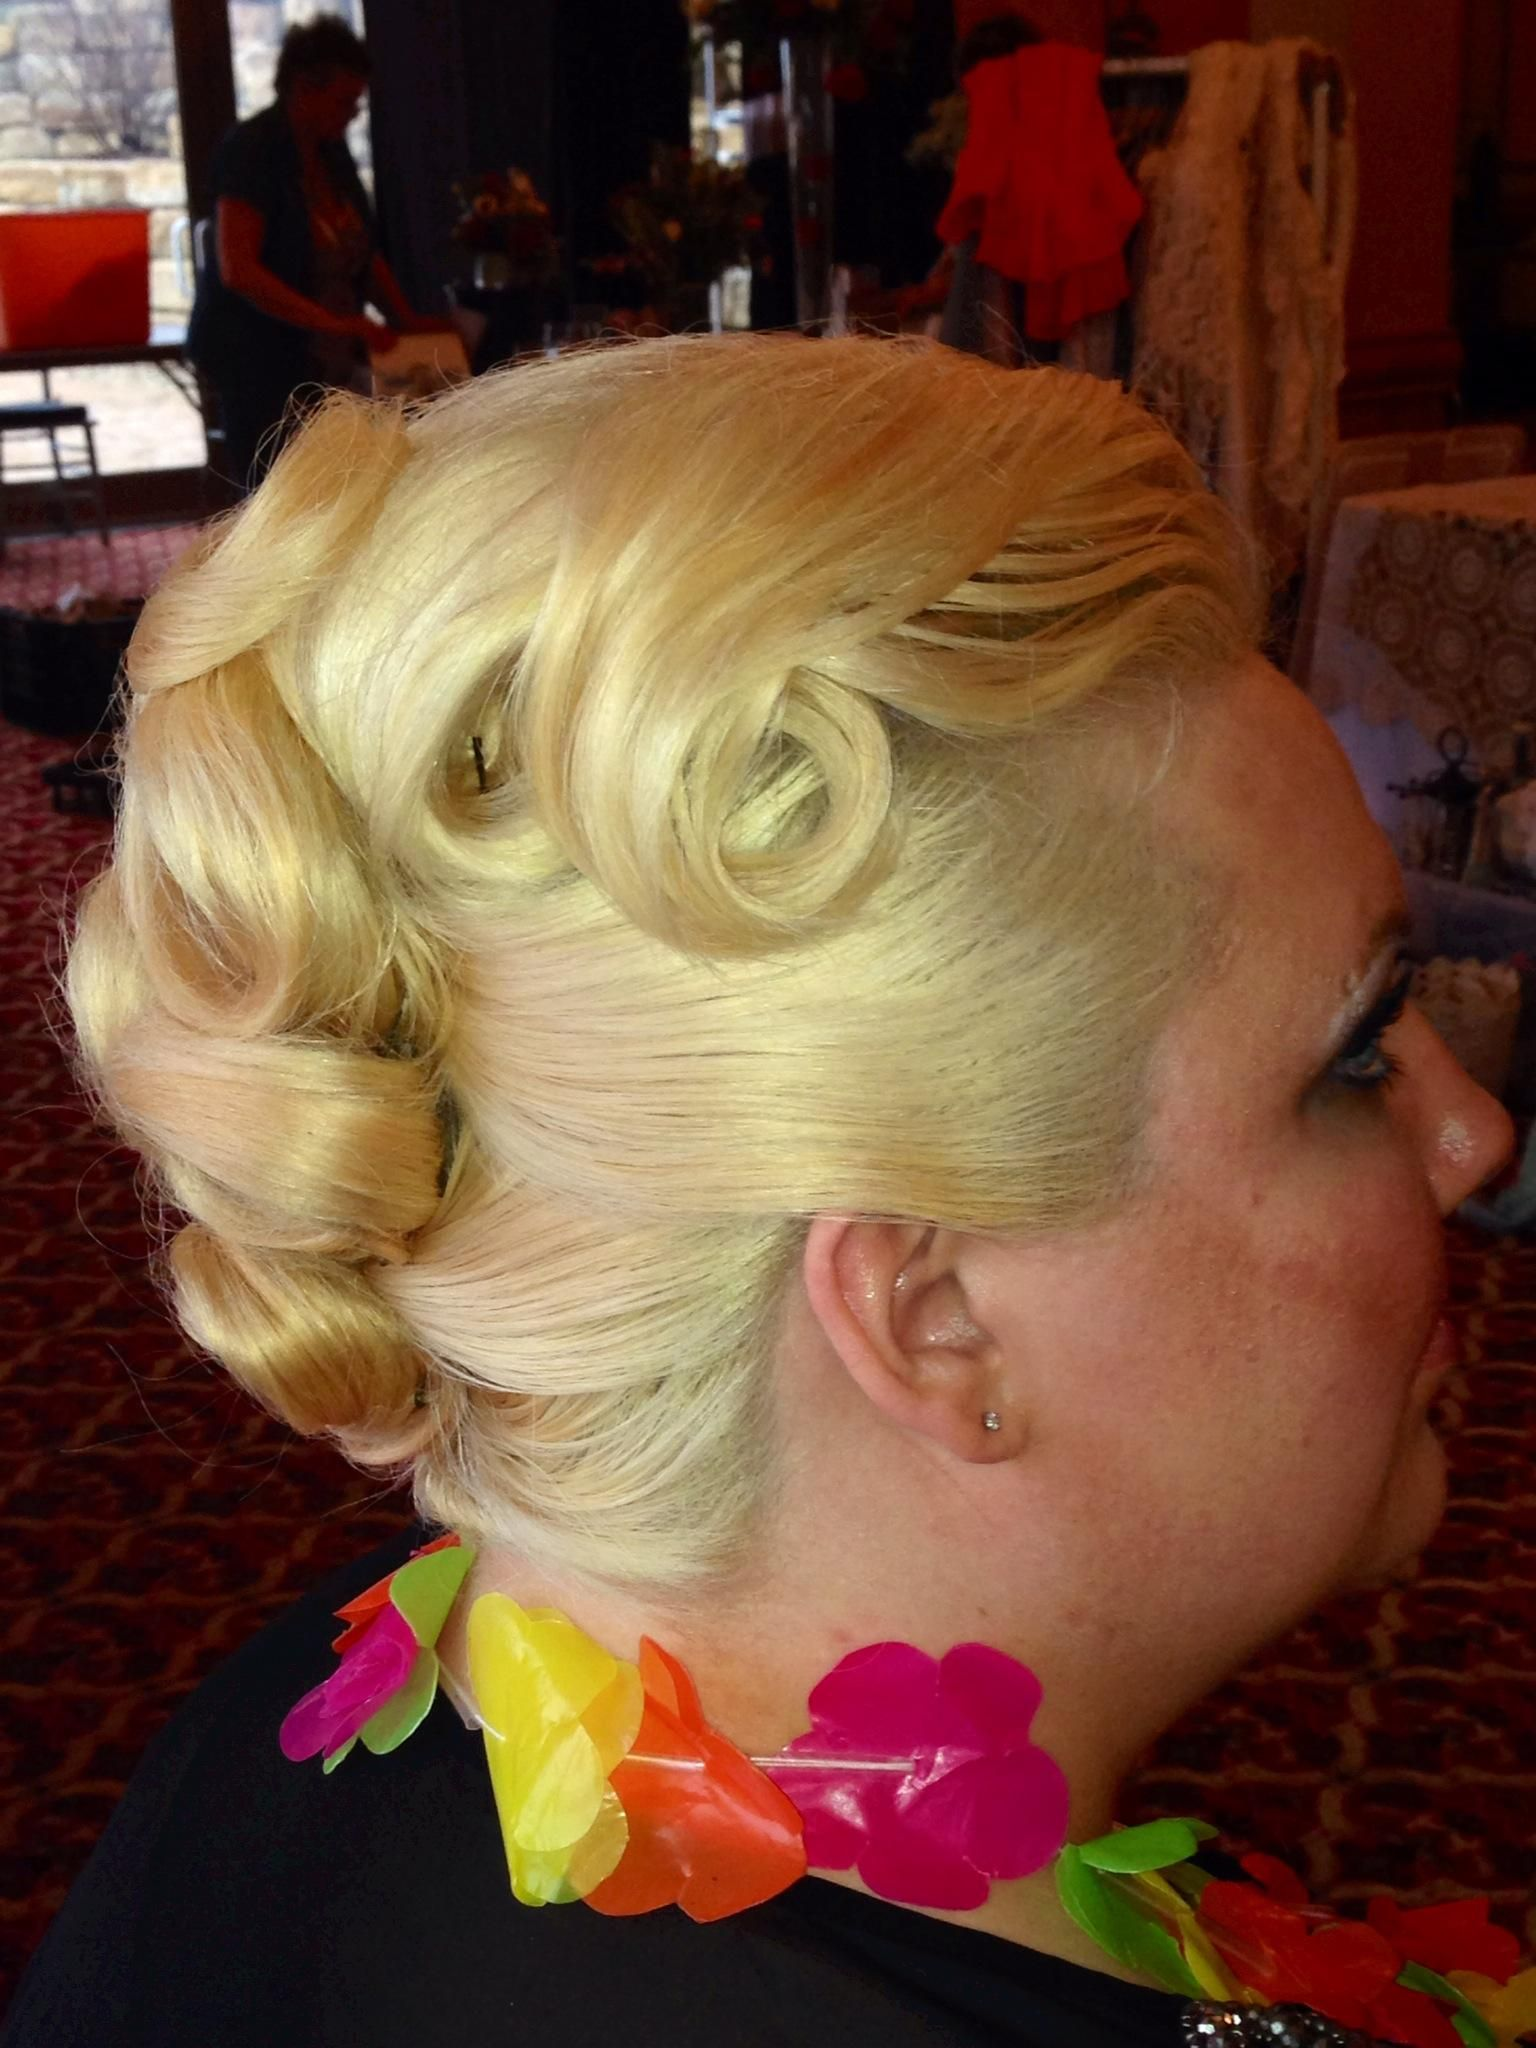 Vintage pin curl look created without heat and on the spot at a